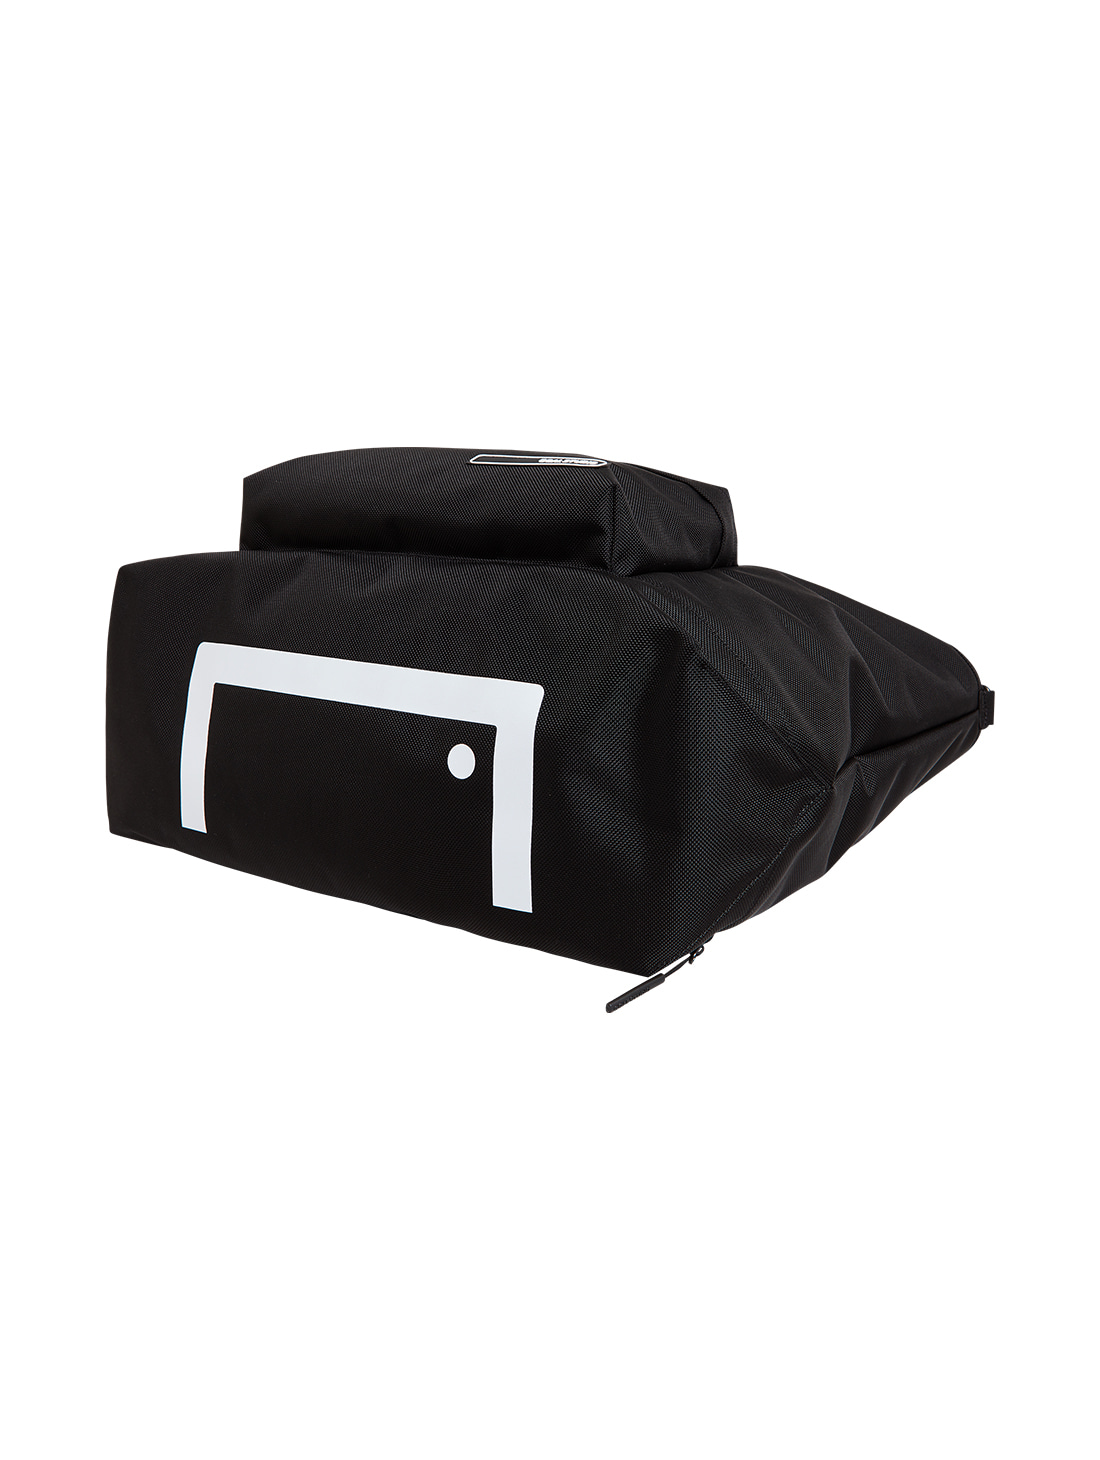 LOGO WAPPEN TOTE BAG - BLACK